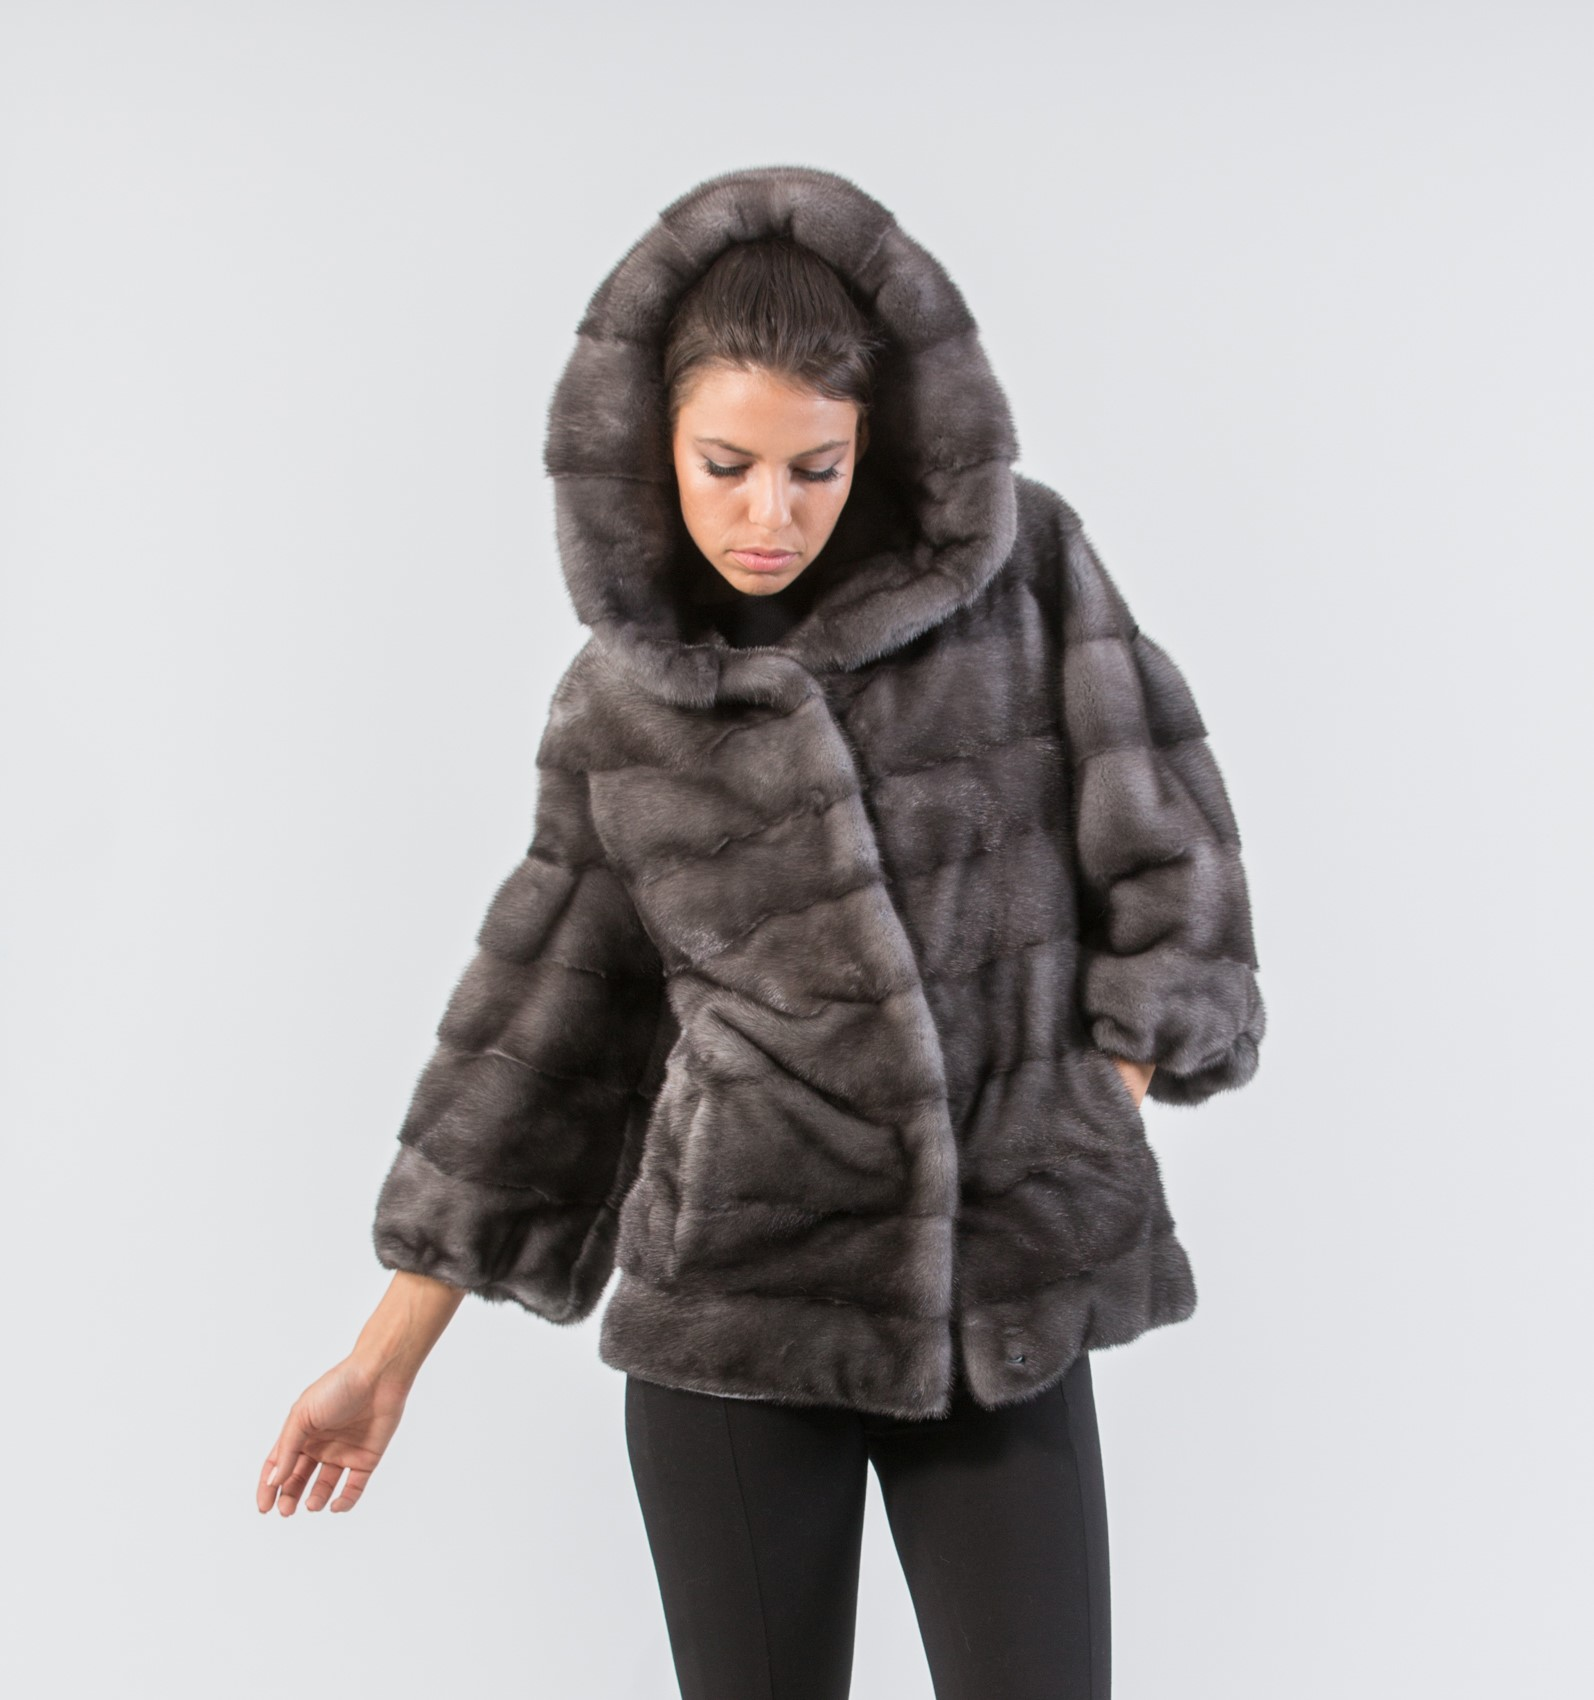 Blue Iris Mink Fur Jacket With Hood . Real Fur Coats and Accessories.